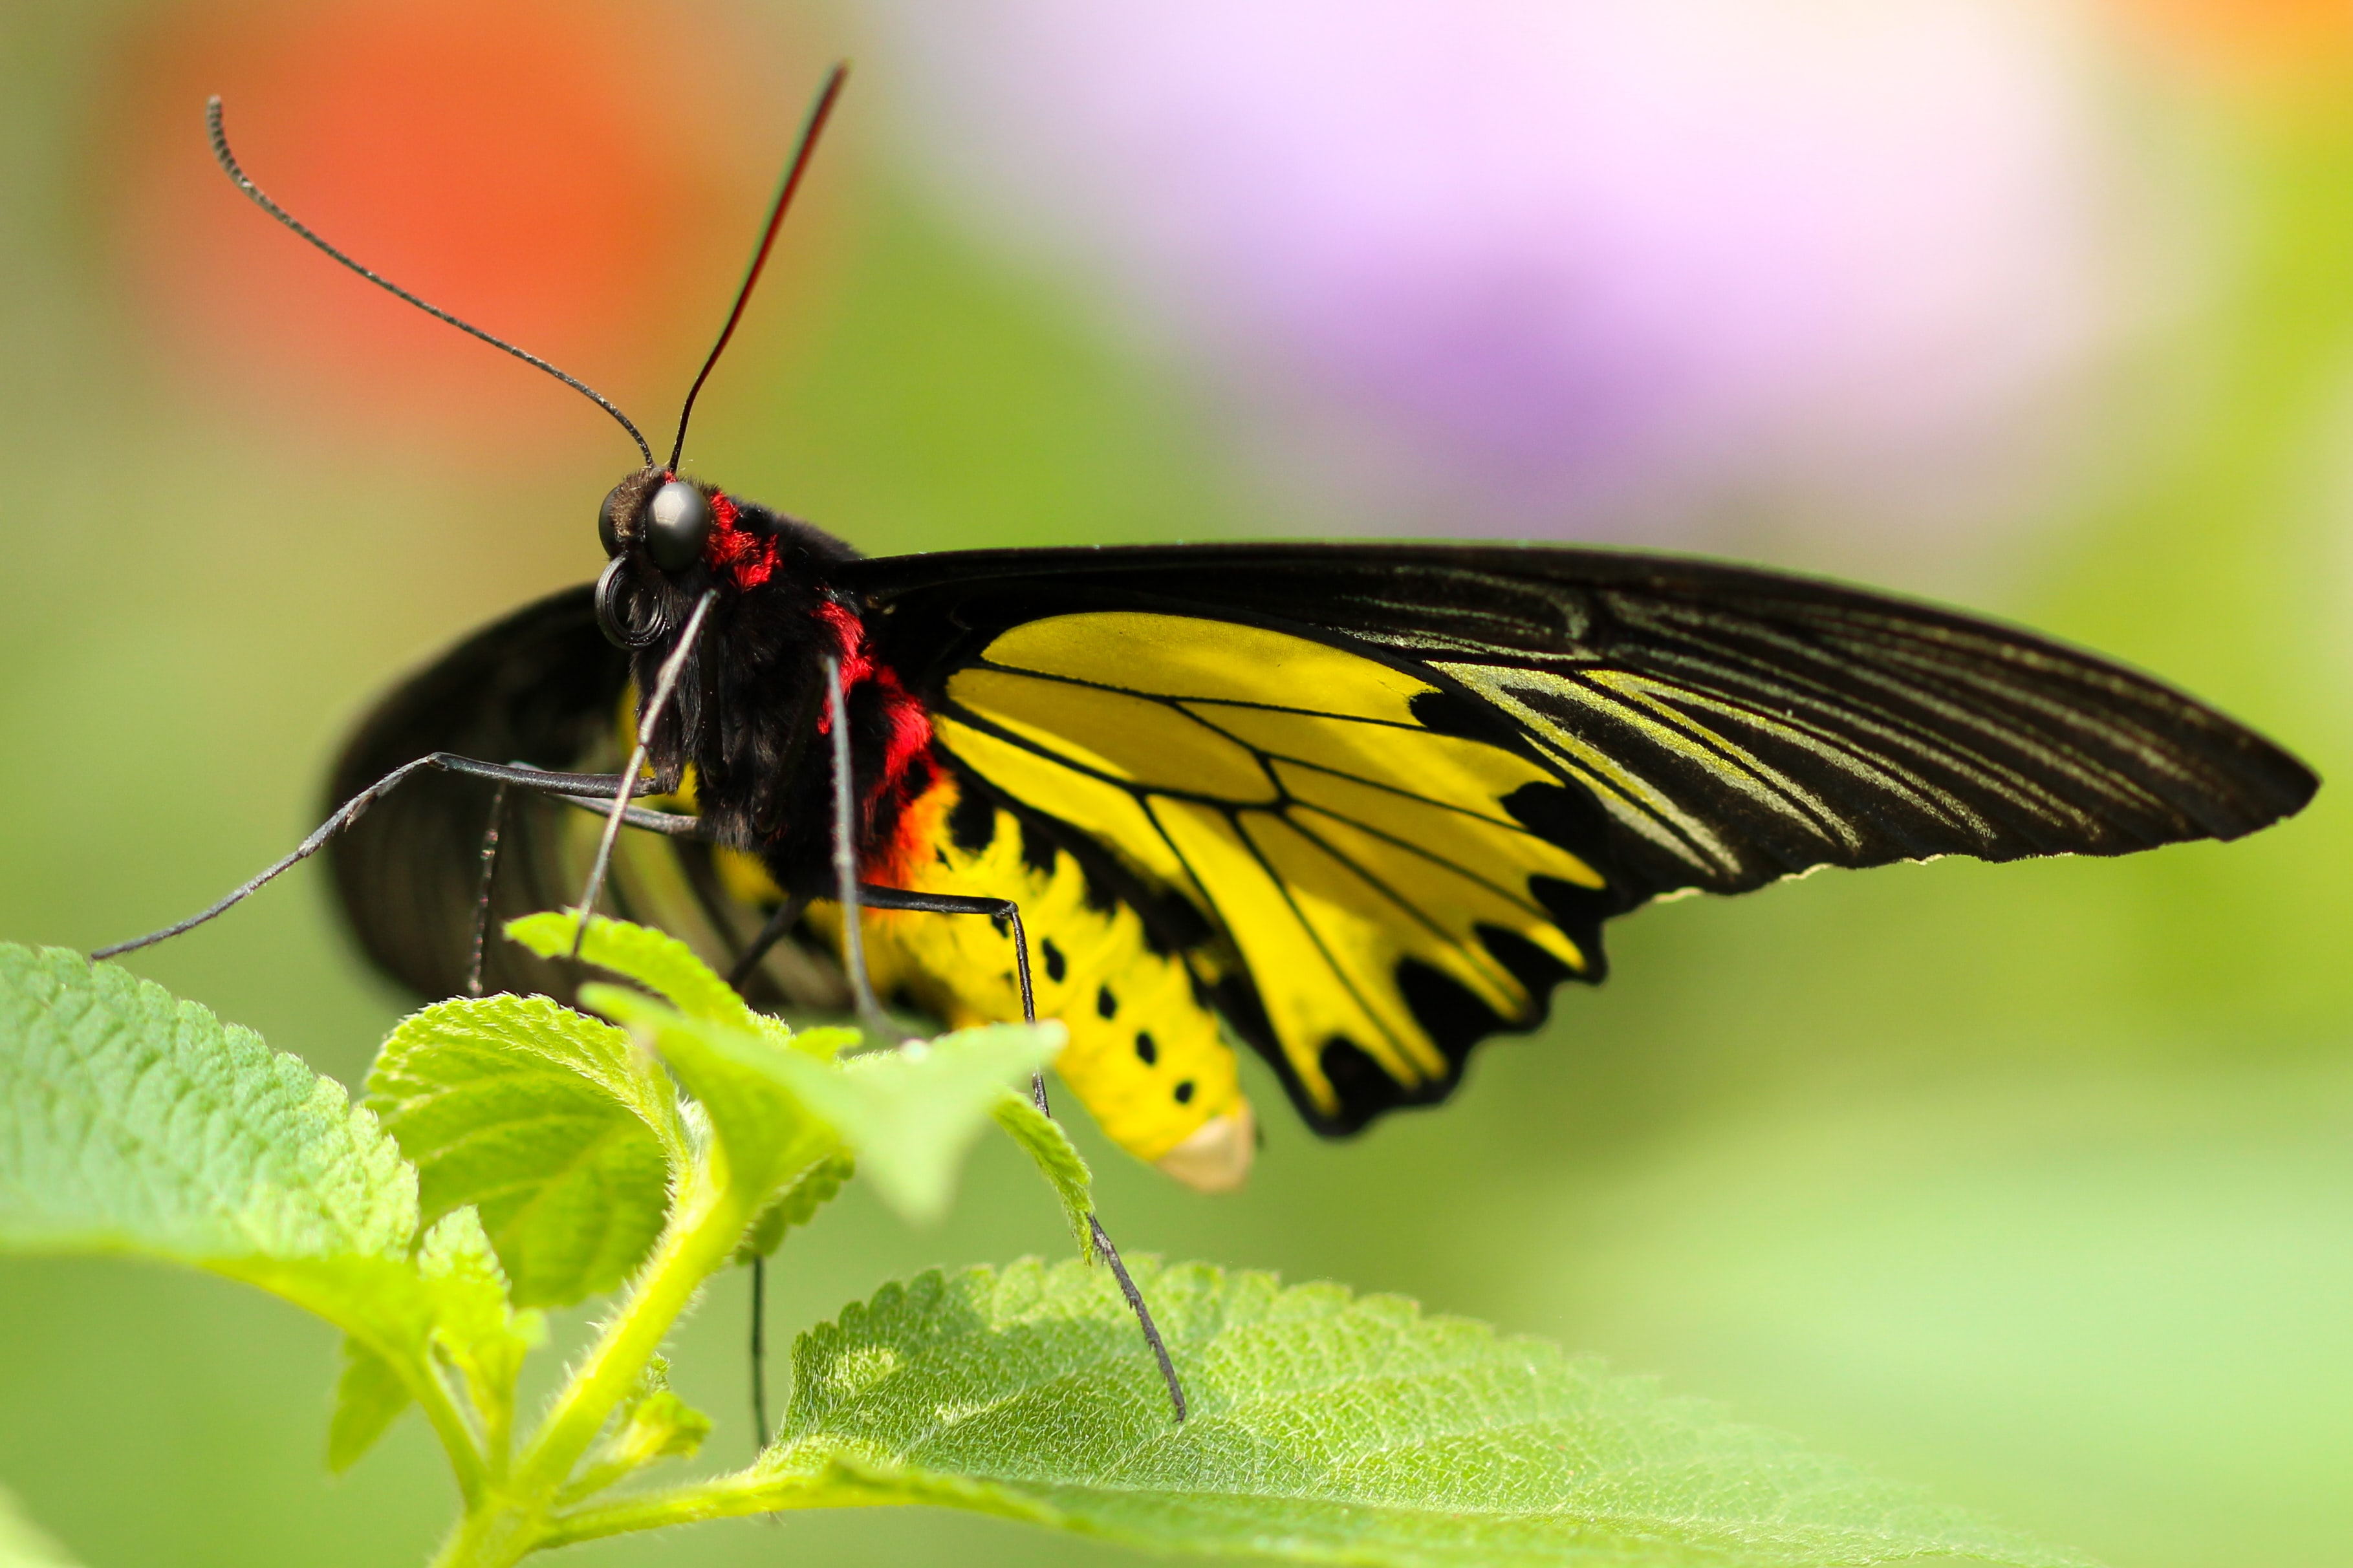 black and yellow butterfly on green leafed plant